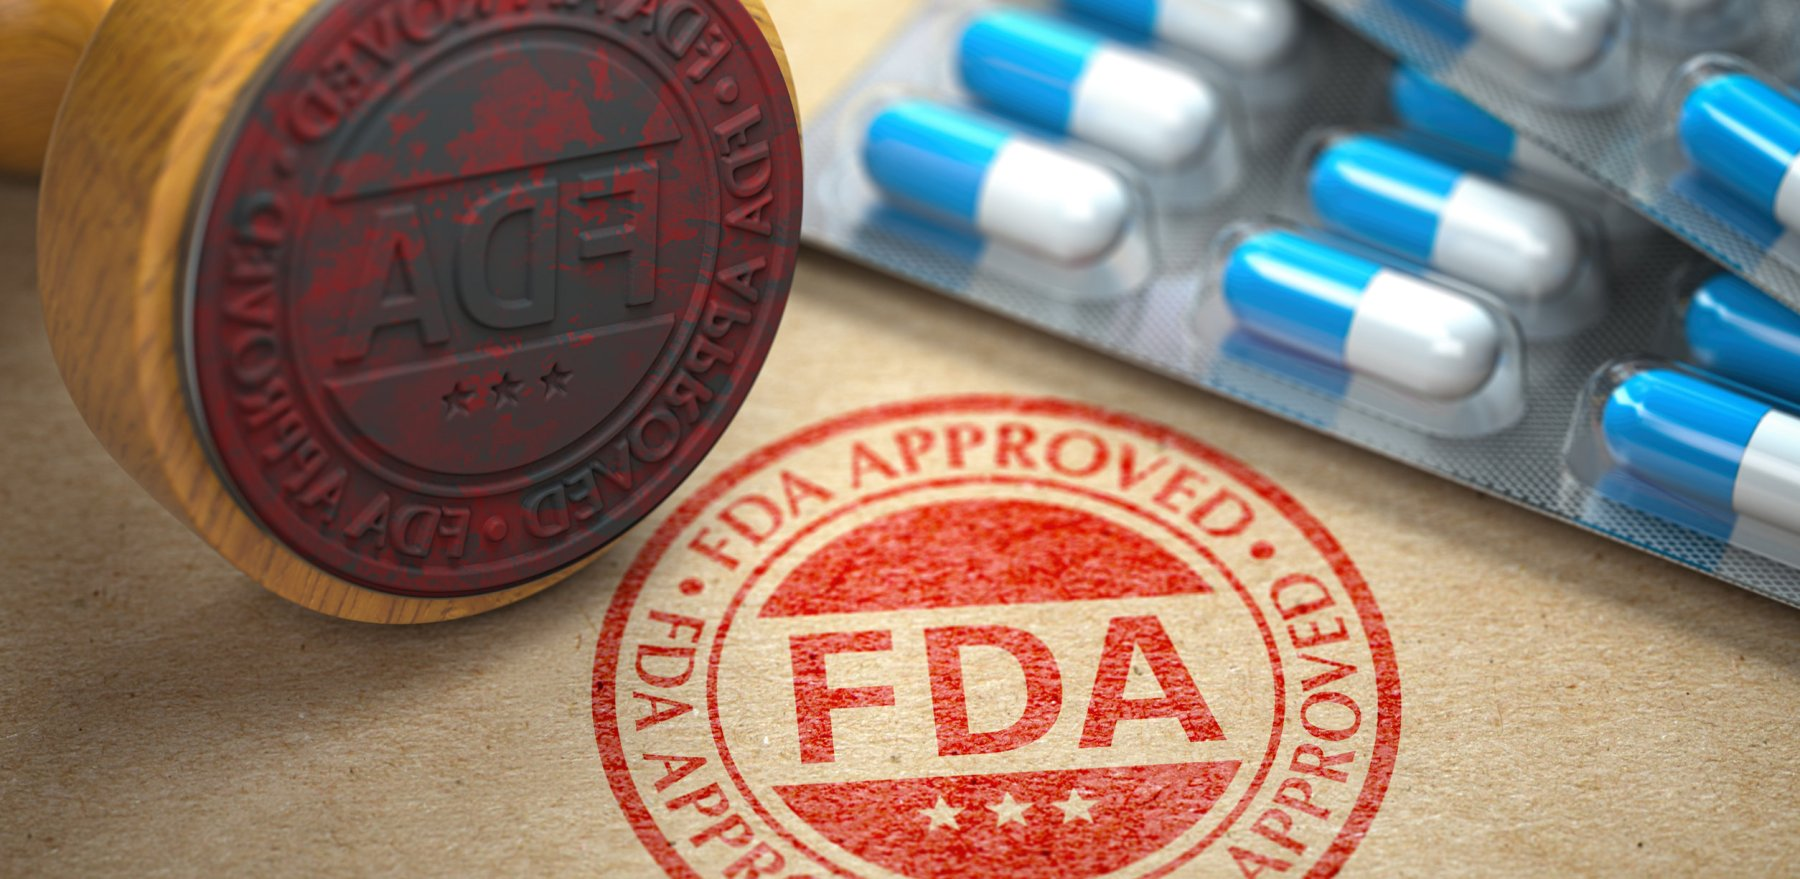 FDA approved  concept. Rubber stamp with FDA and pills on craft paper. 3d illustration